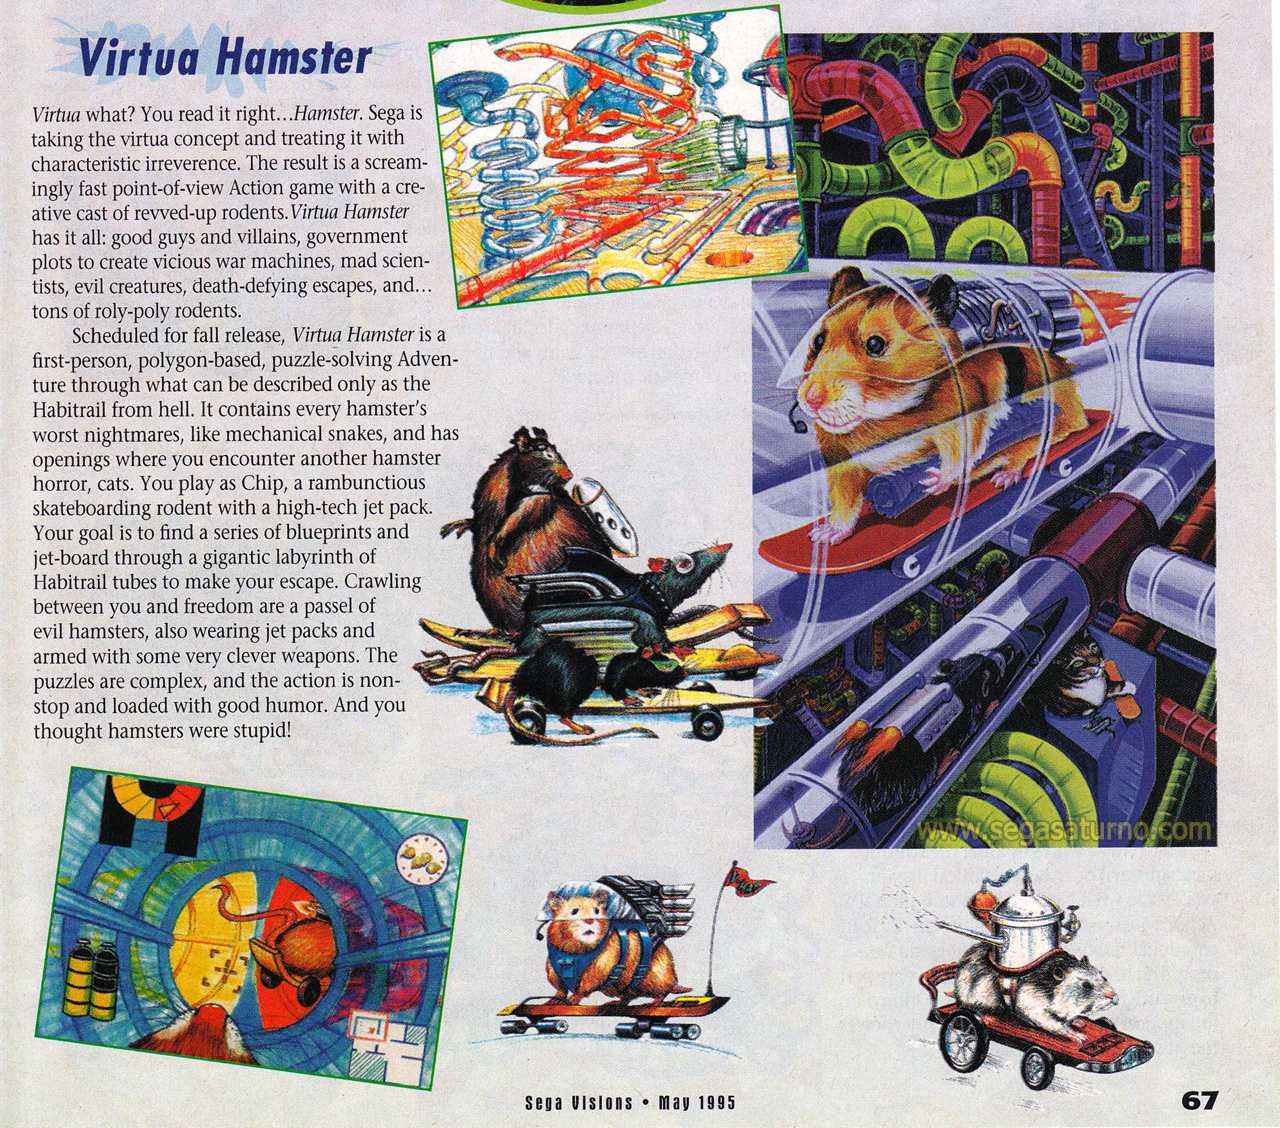 Scan from SEGA Visions - May 1995